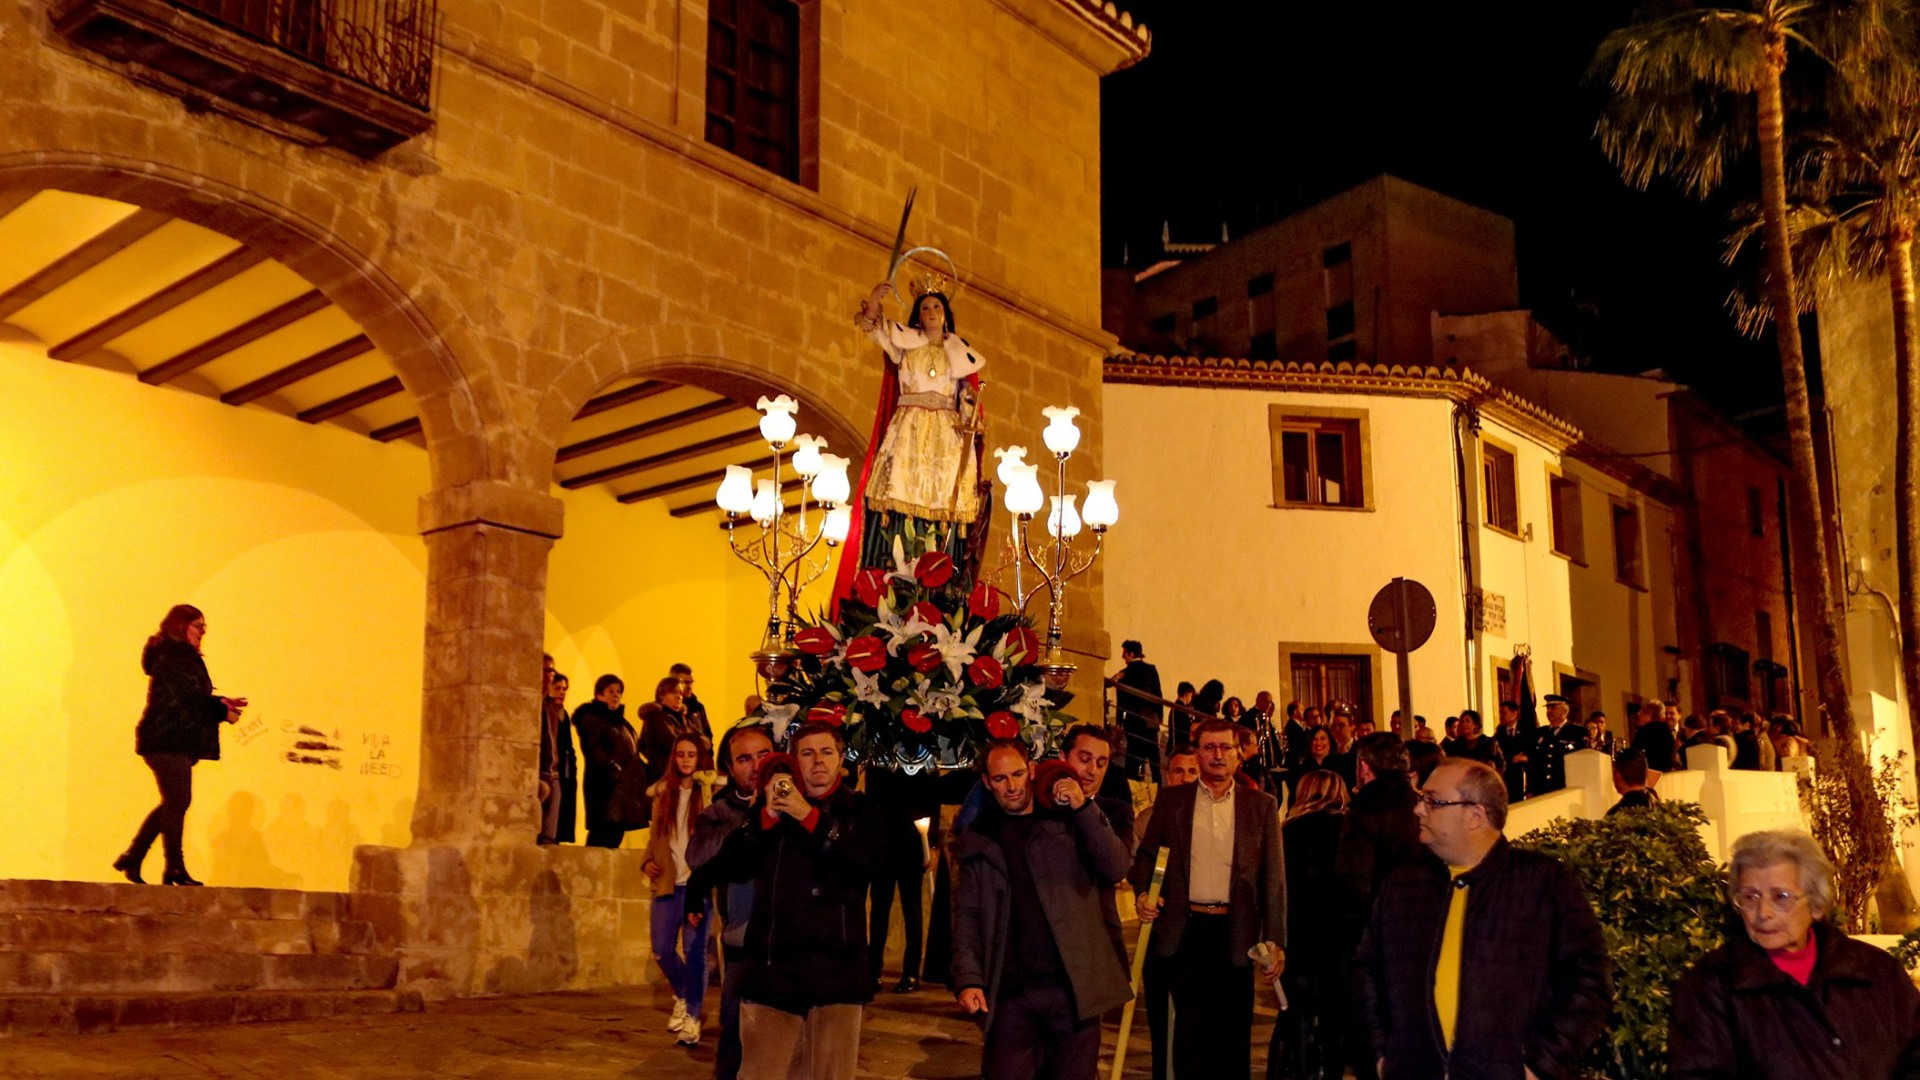 SANTA CATALINA FESTIVITIES